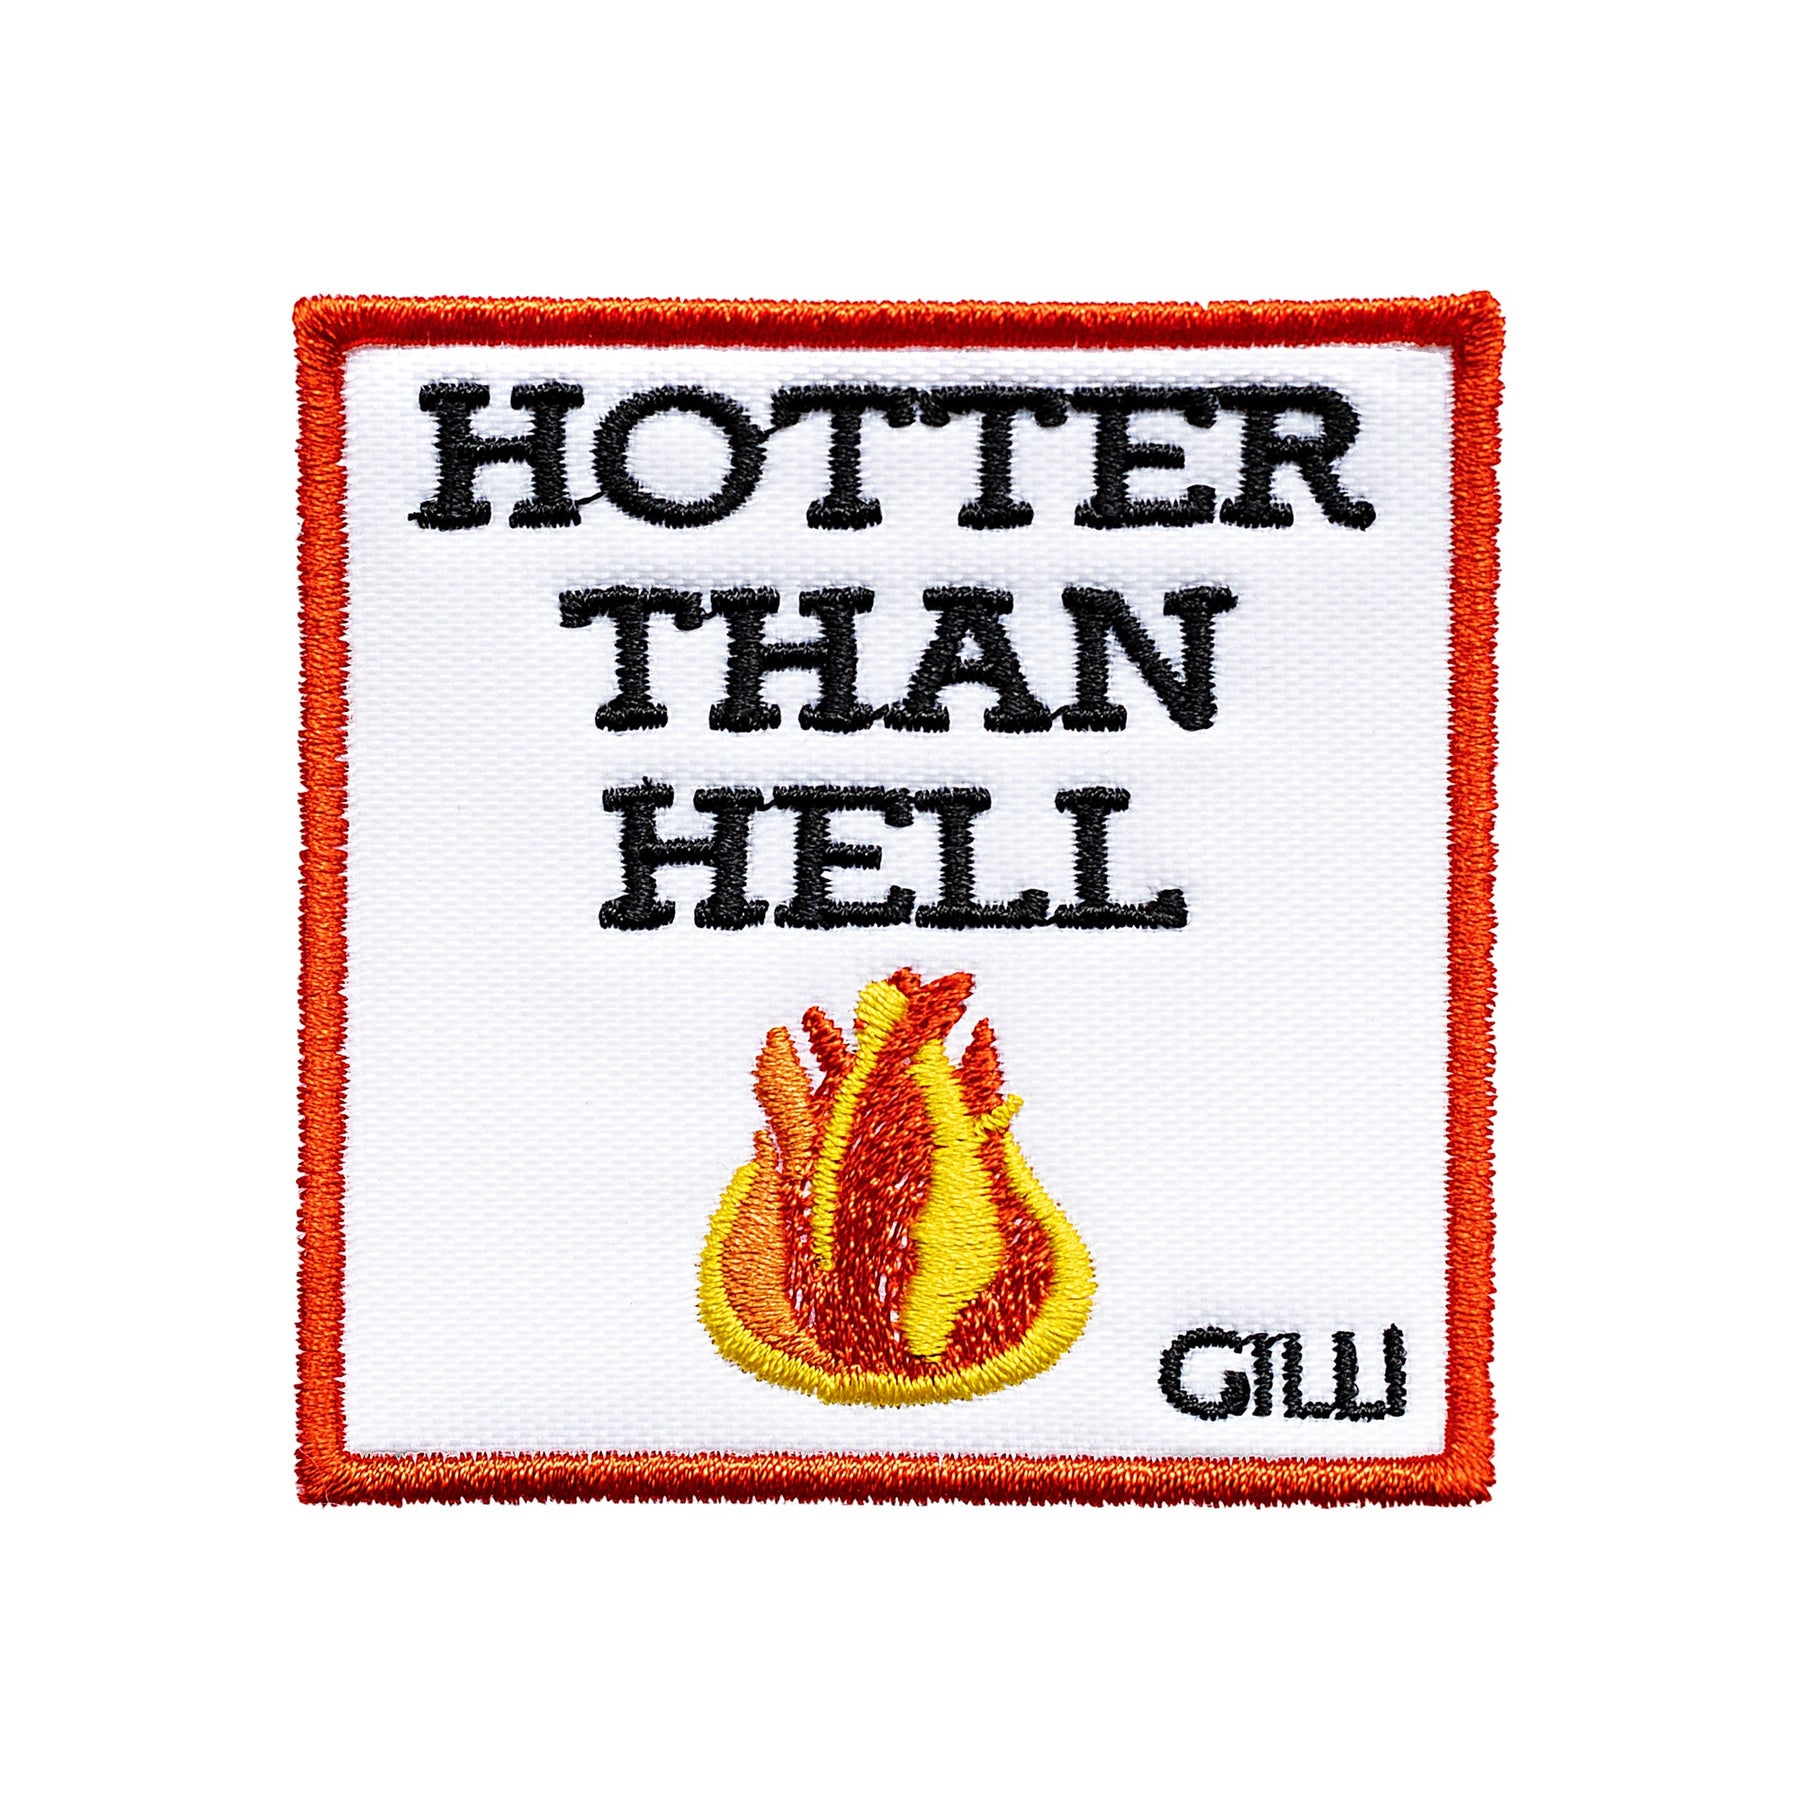 Hotter than hell Patch